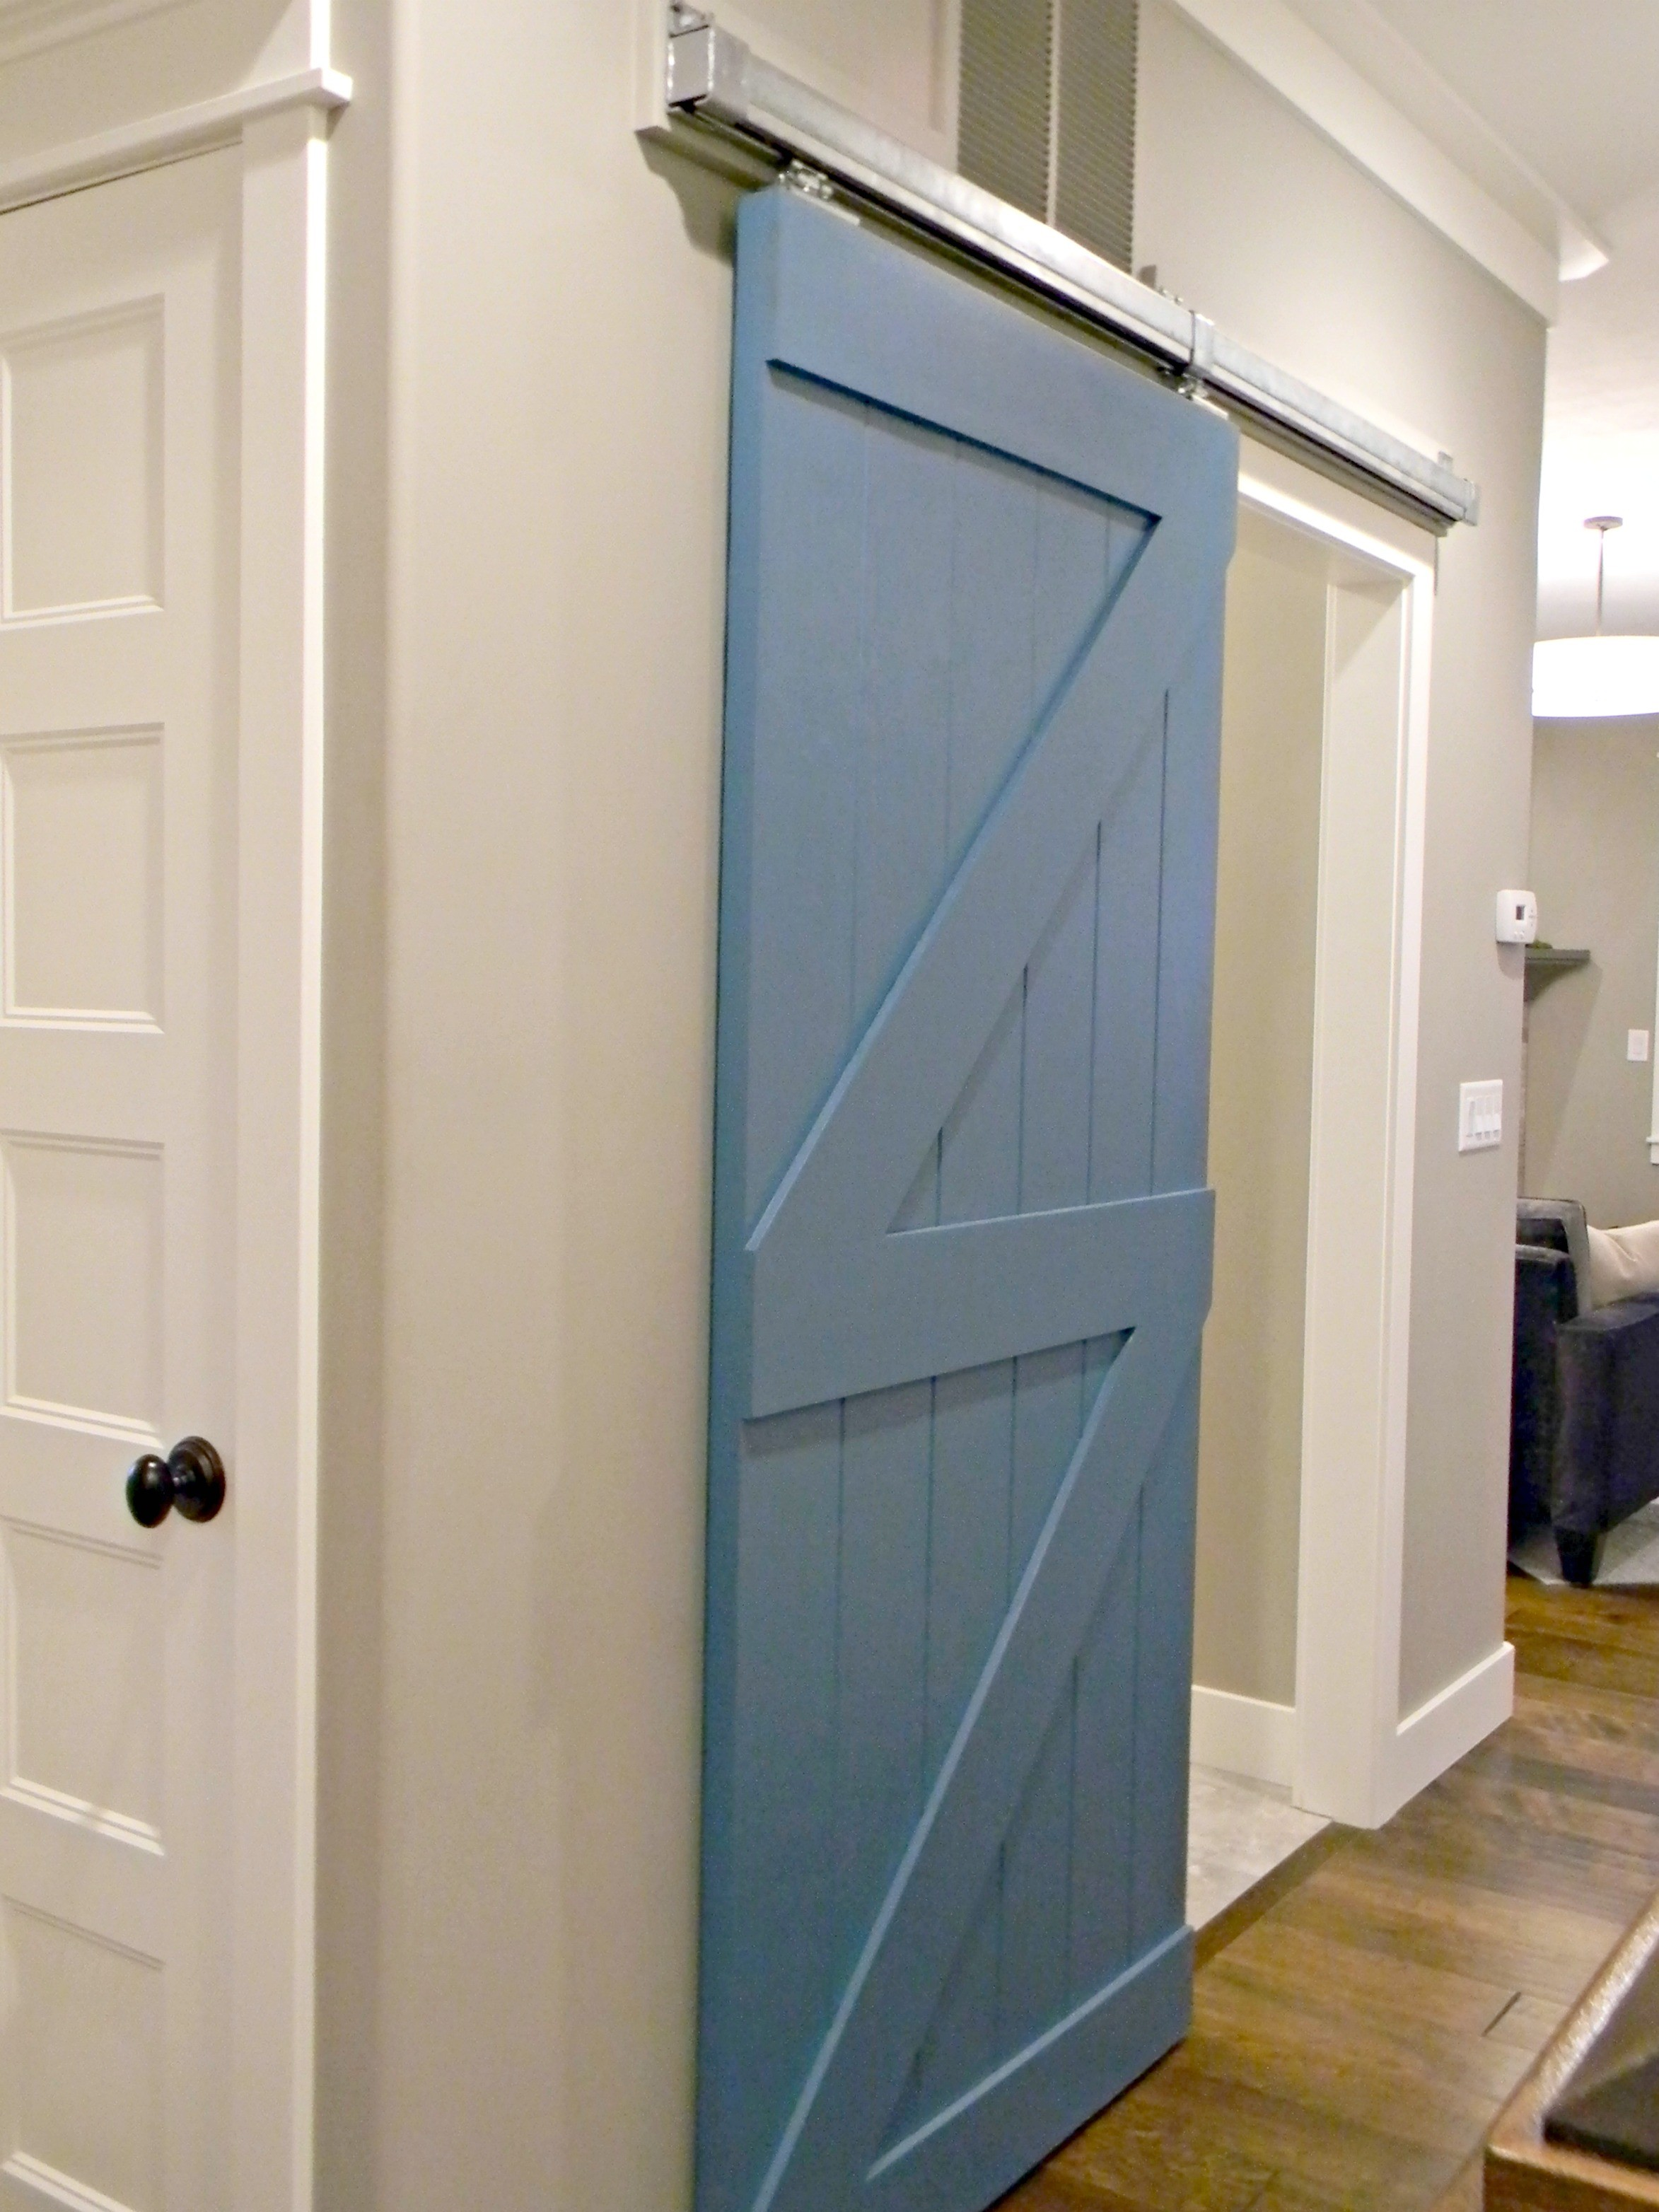 Sliding Barn Doors Inside House A Creative Mom